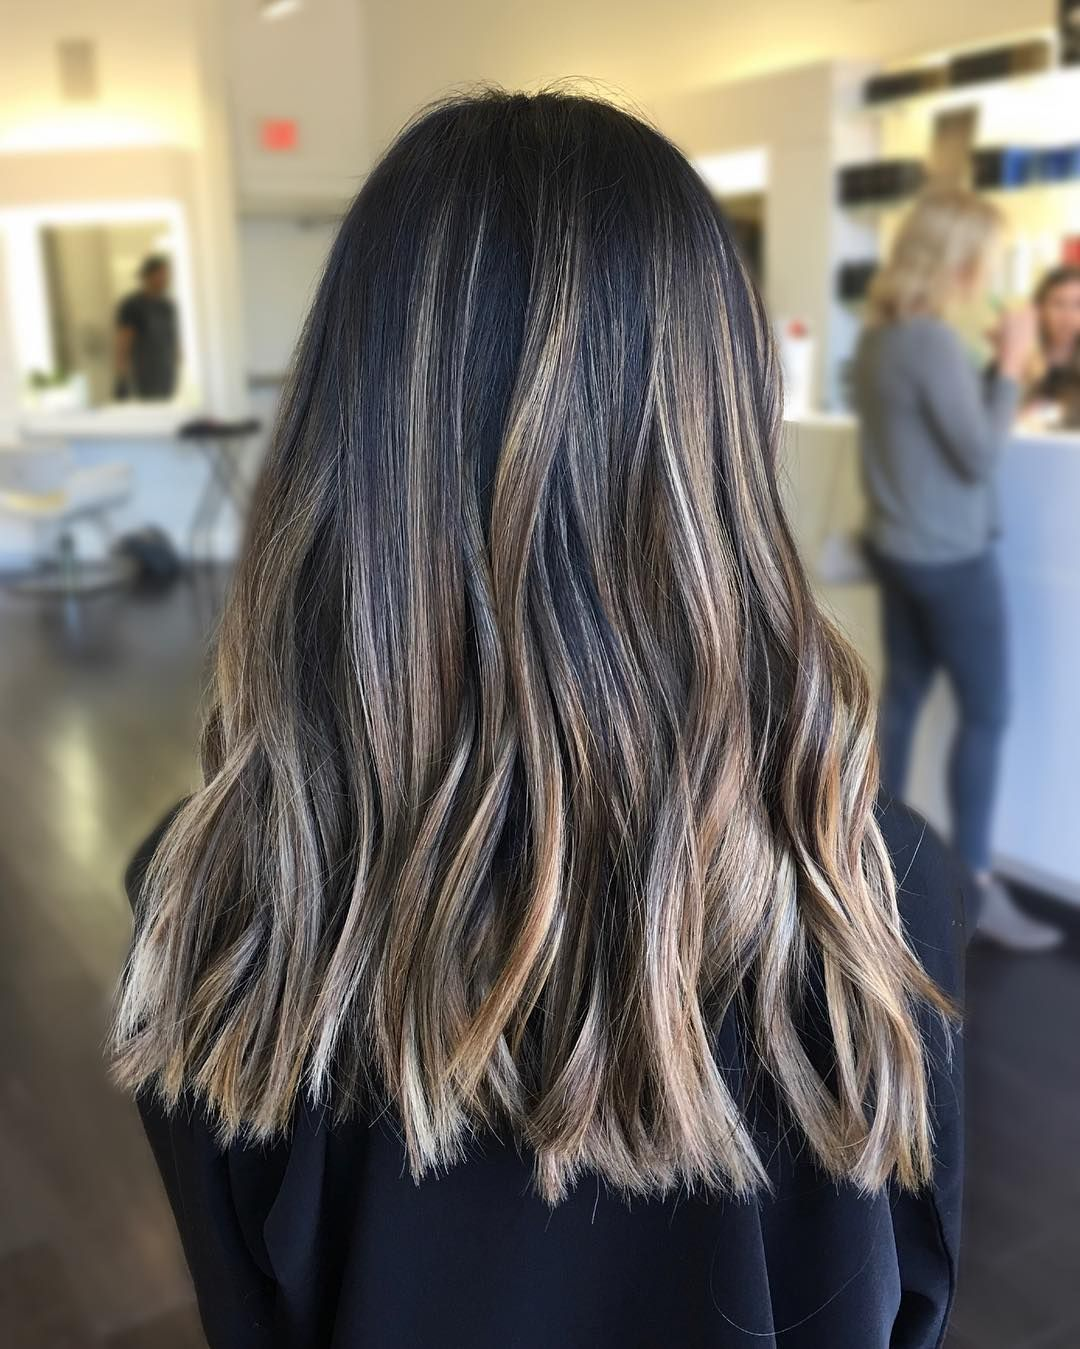 Ig Colorbymichael Hairstyles Makeup In 2019 Hair Balayage